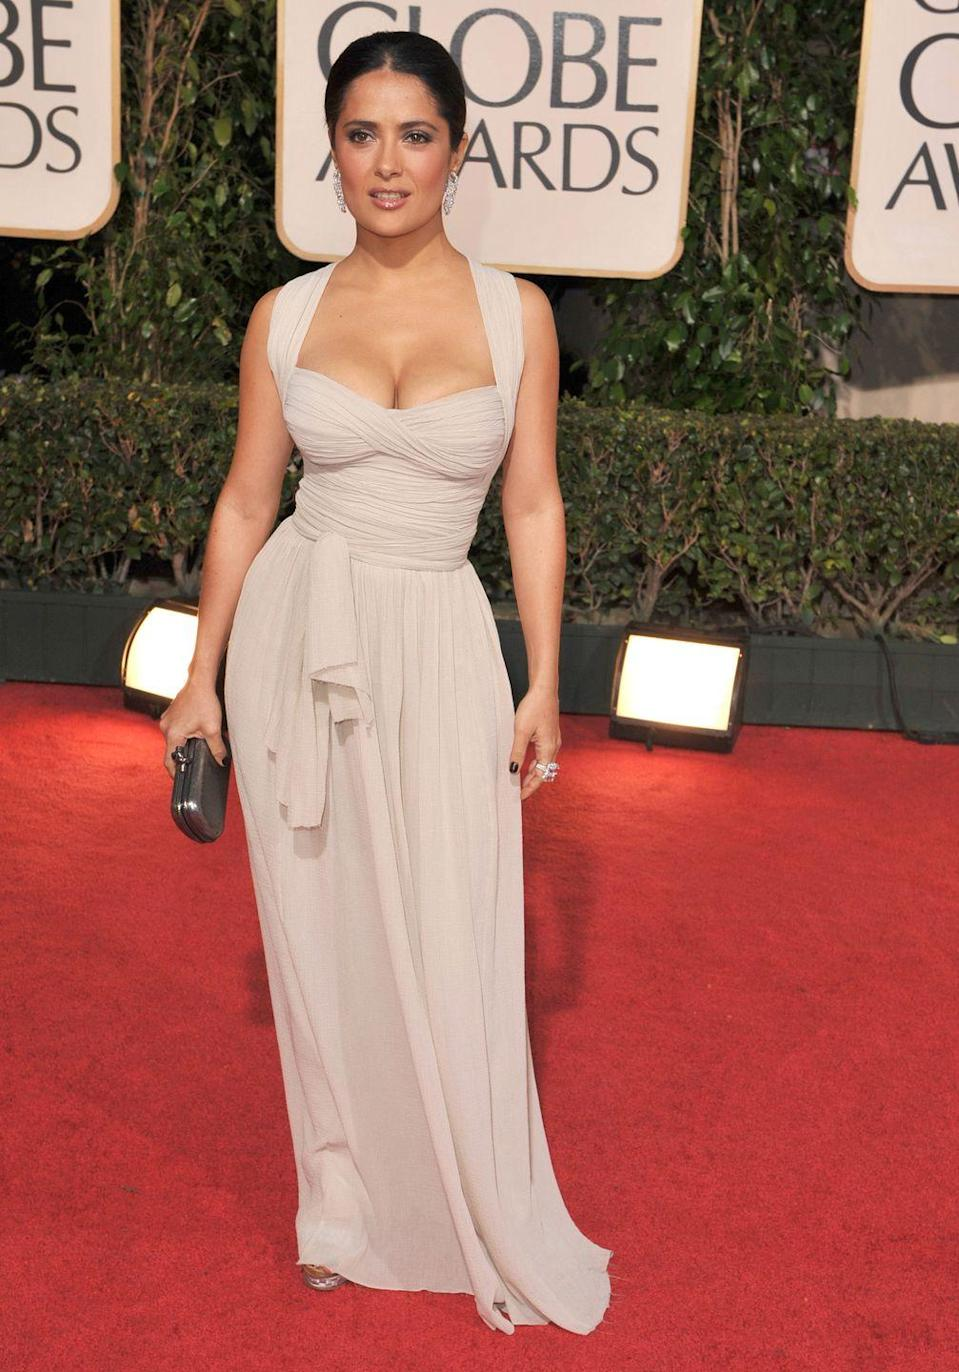 <p>In 2009, Salma Hayek gave off sleek, sophisticated vibes in this Bottega Veneta gown with a skintight bodice. </p>